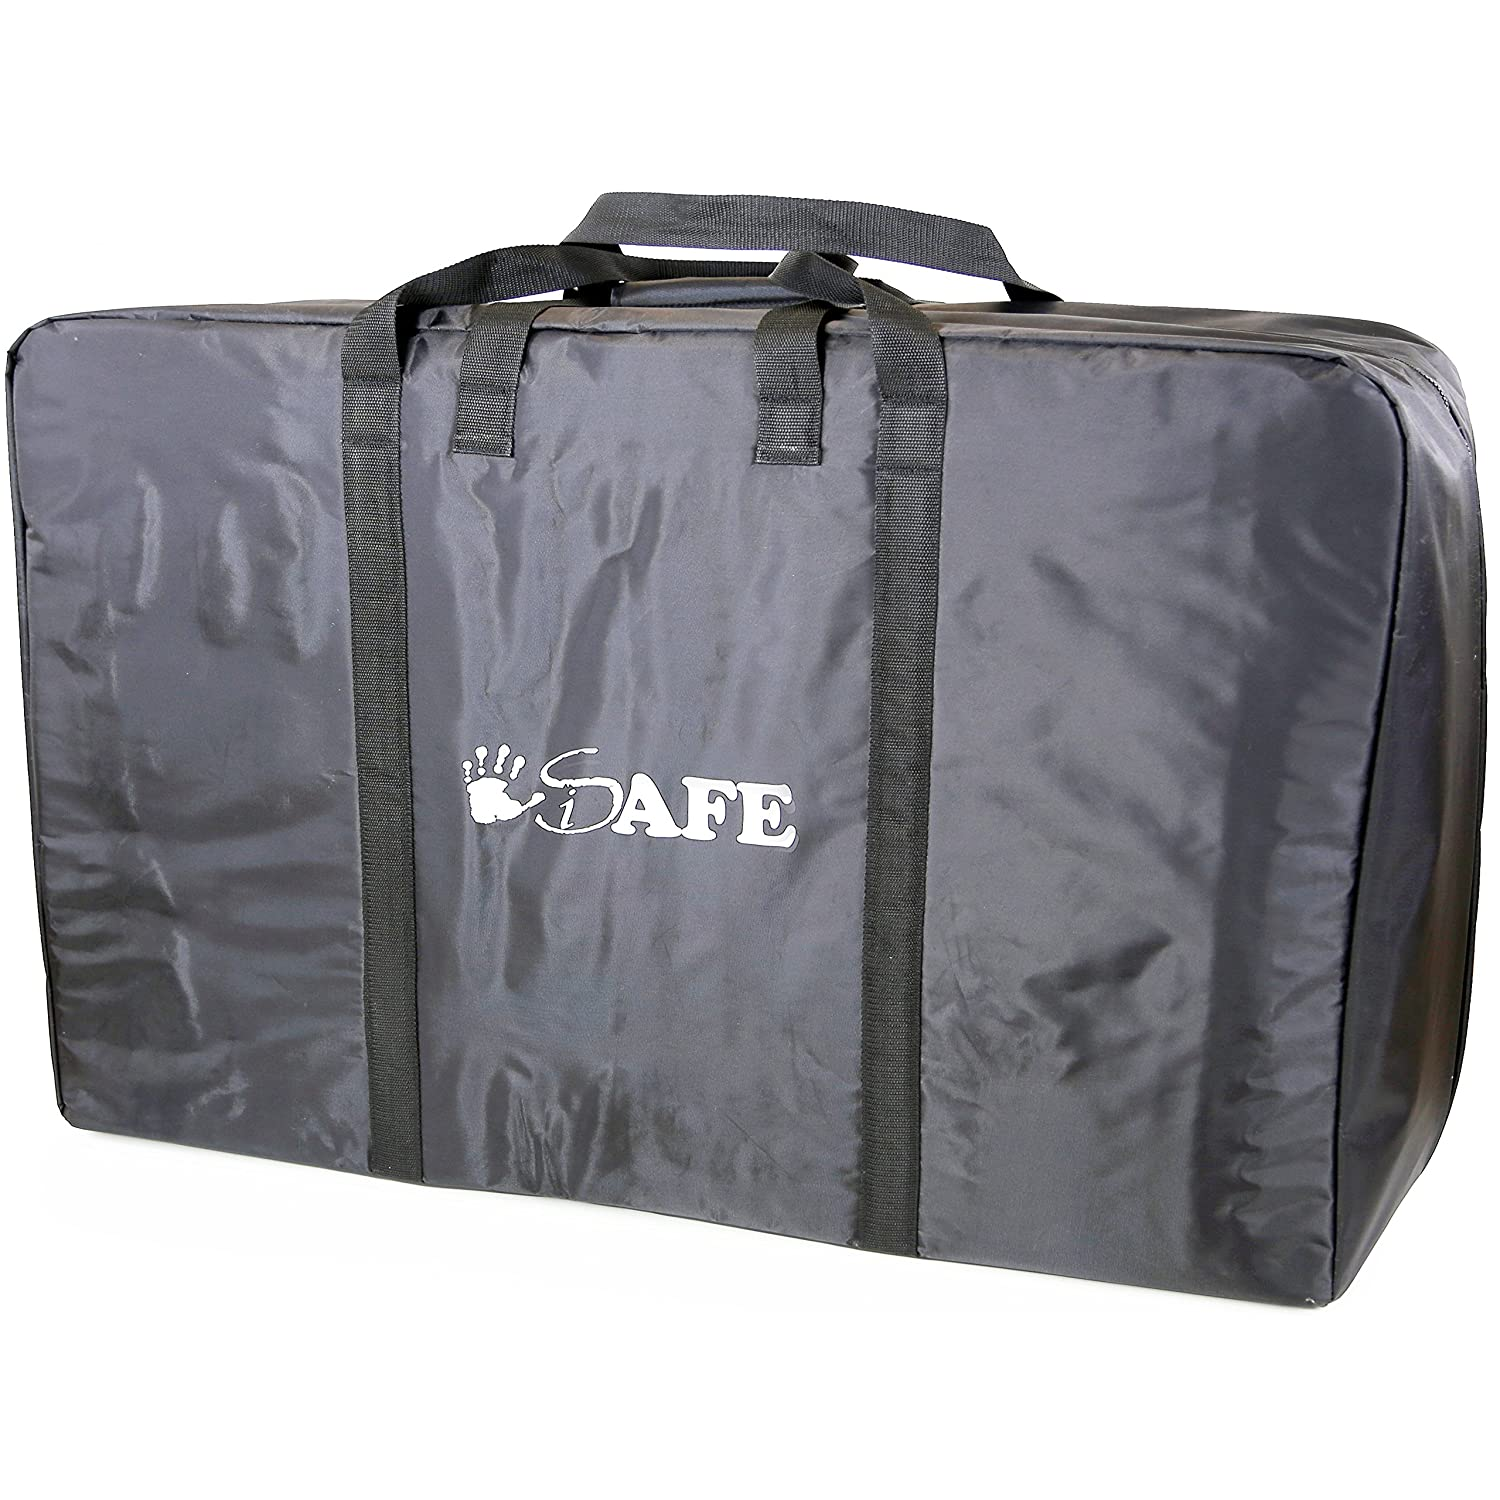 Travel Bag Luggage Heavy Duty Design For Pram System Travel Tote